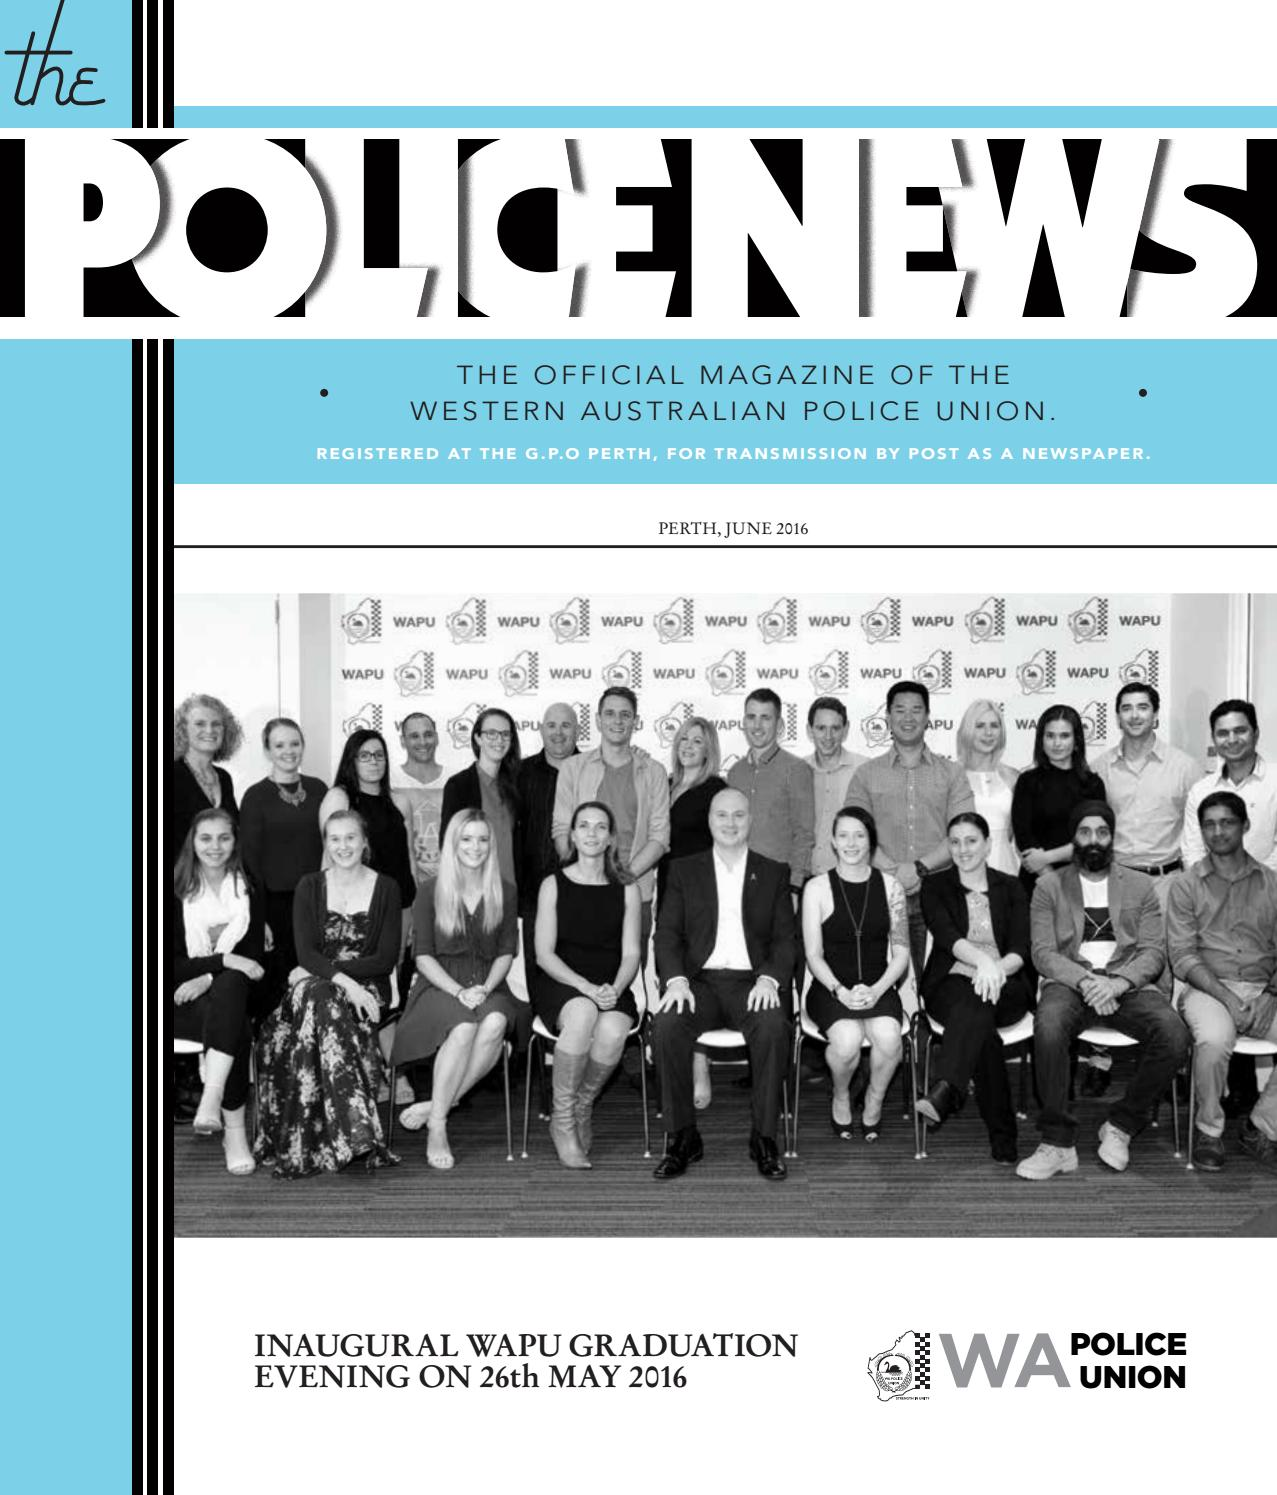 WAPU Police News June 2016 by WA Police Union - issuu